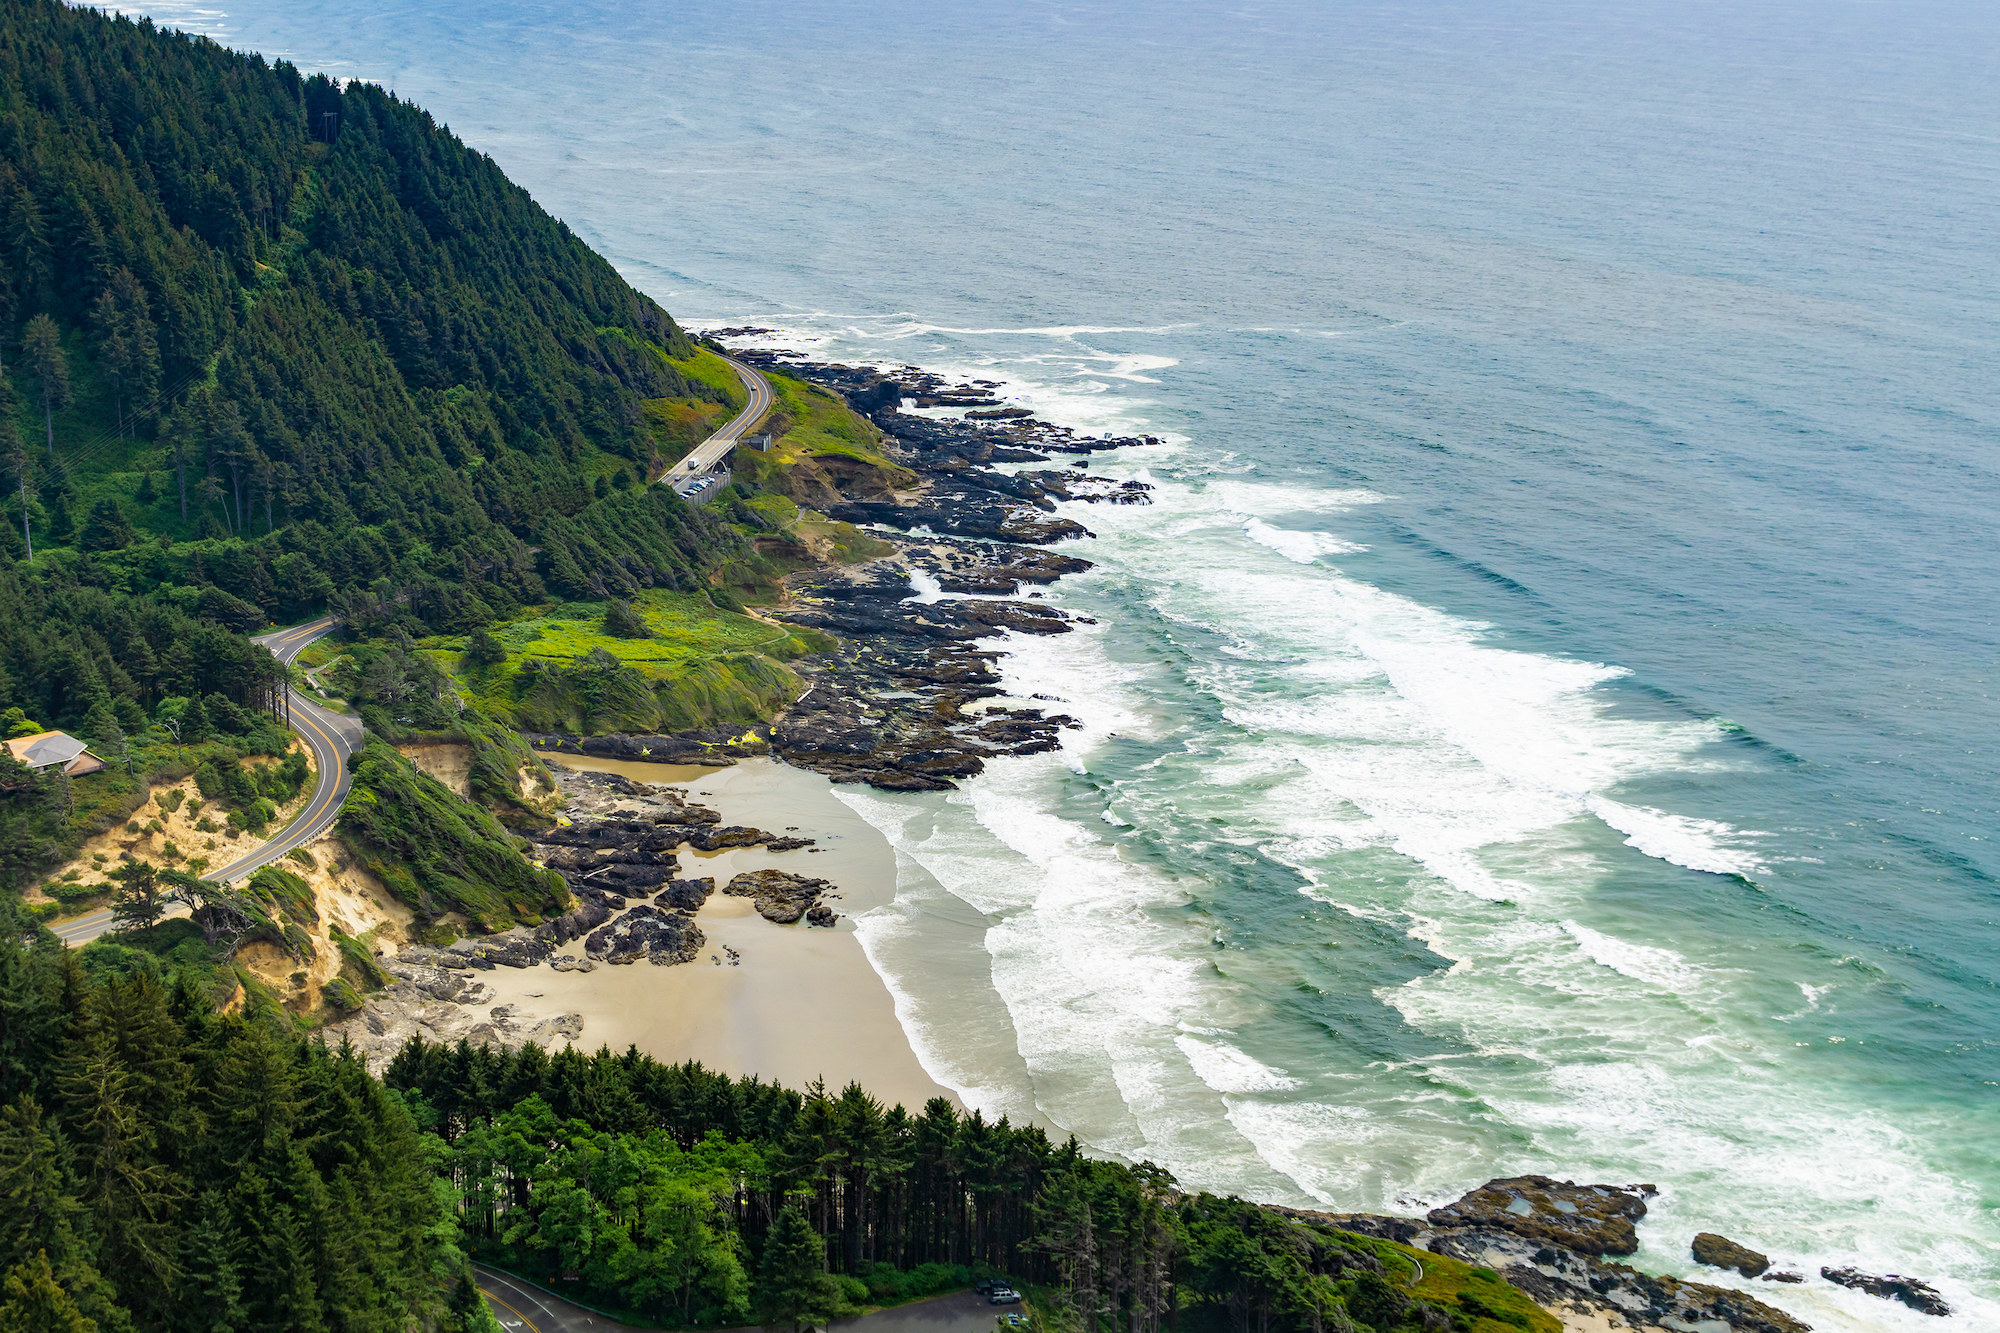 aerial view of road traveling along rocky coast with waves crashing on the shore